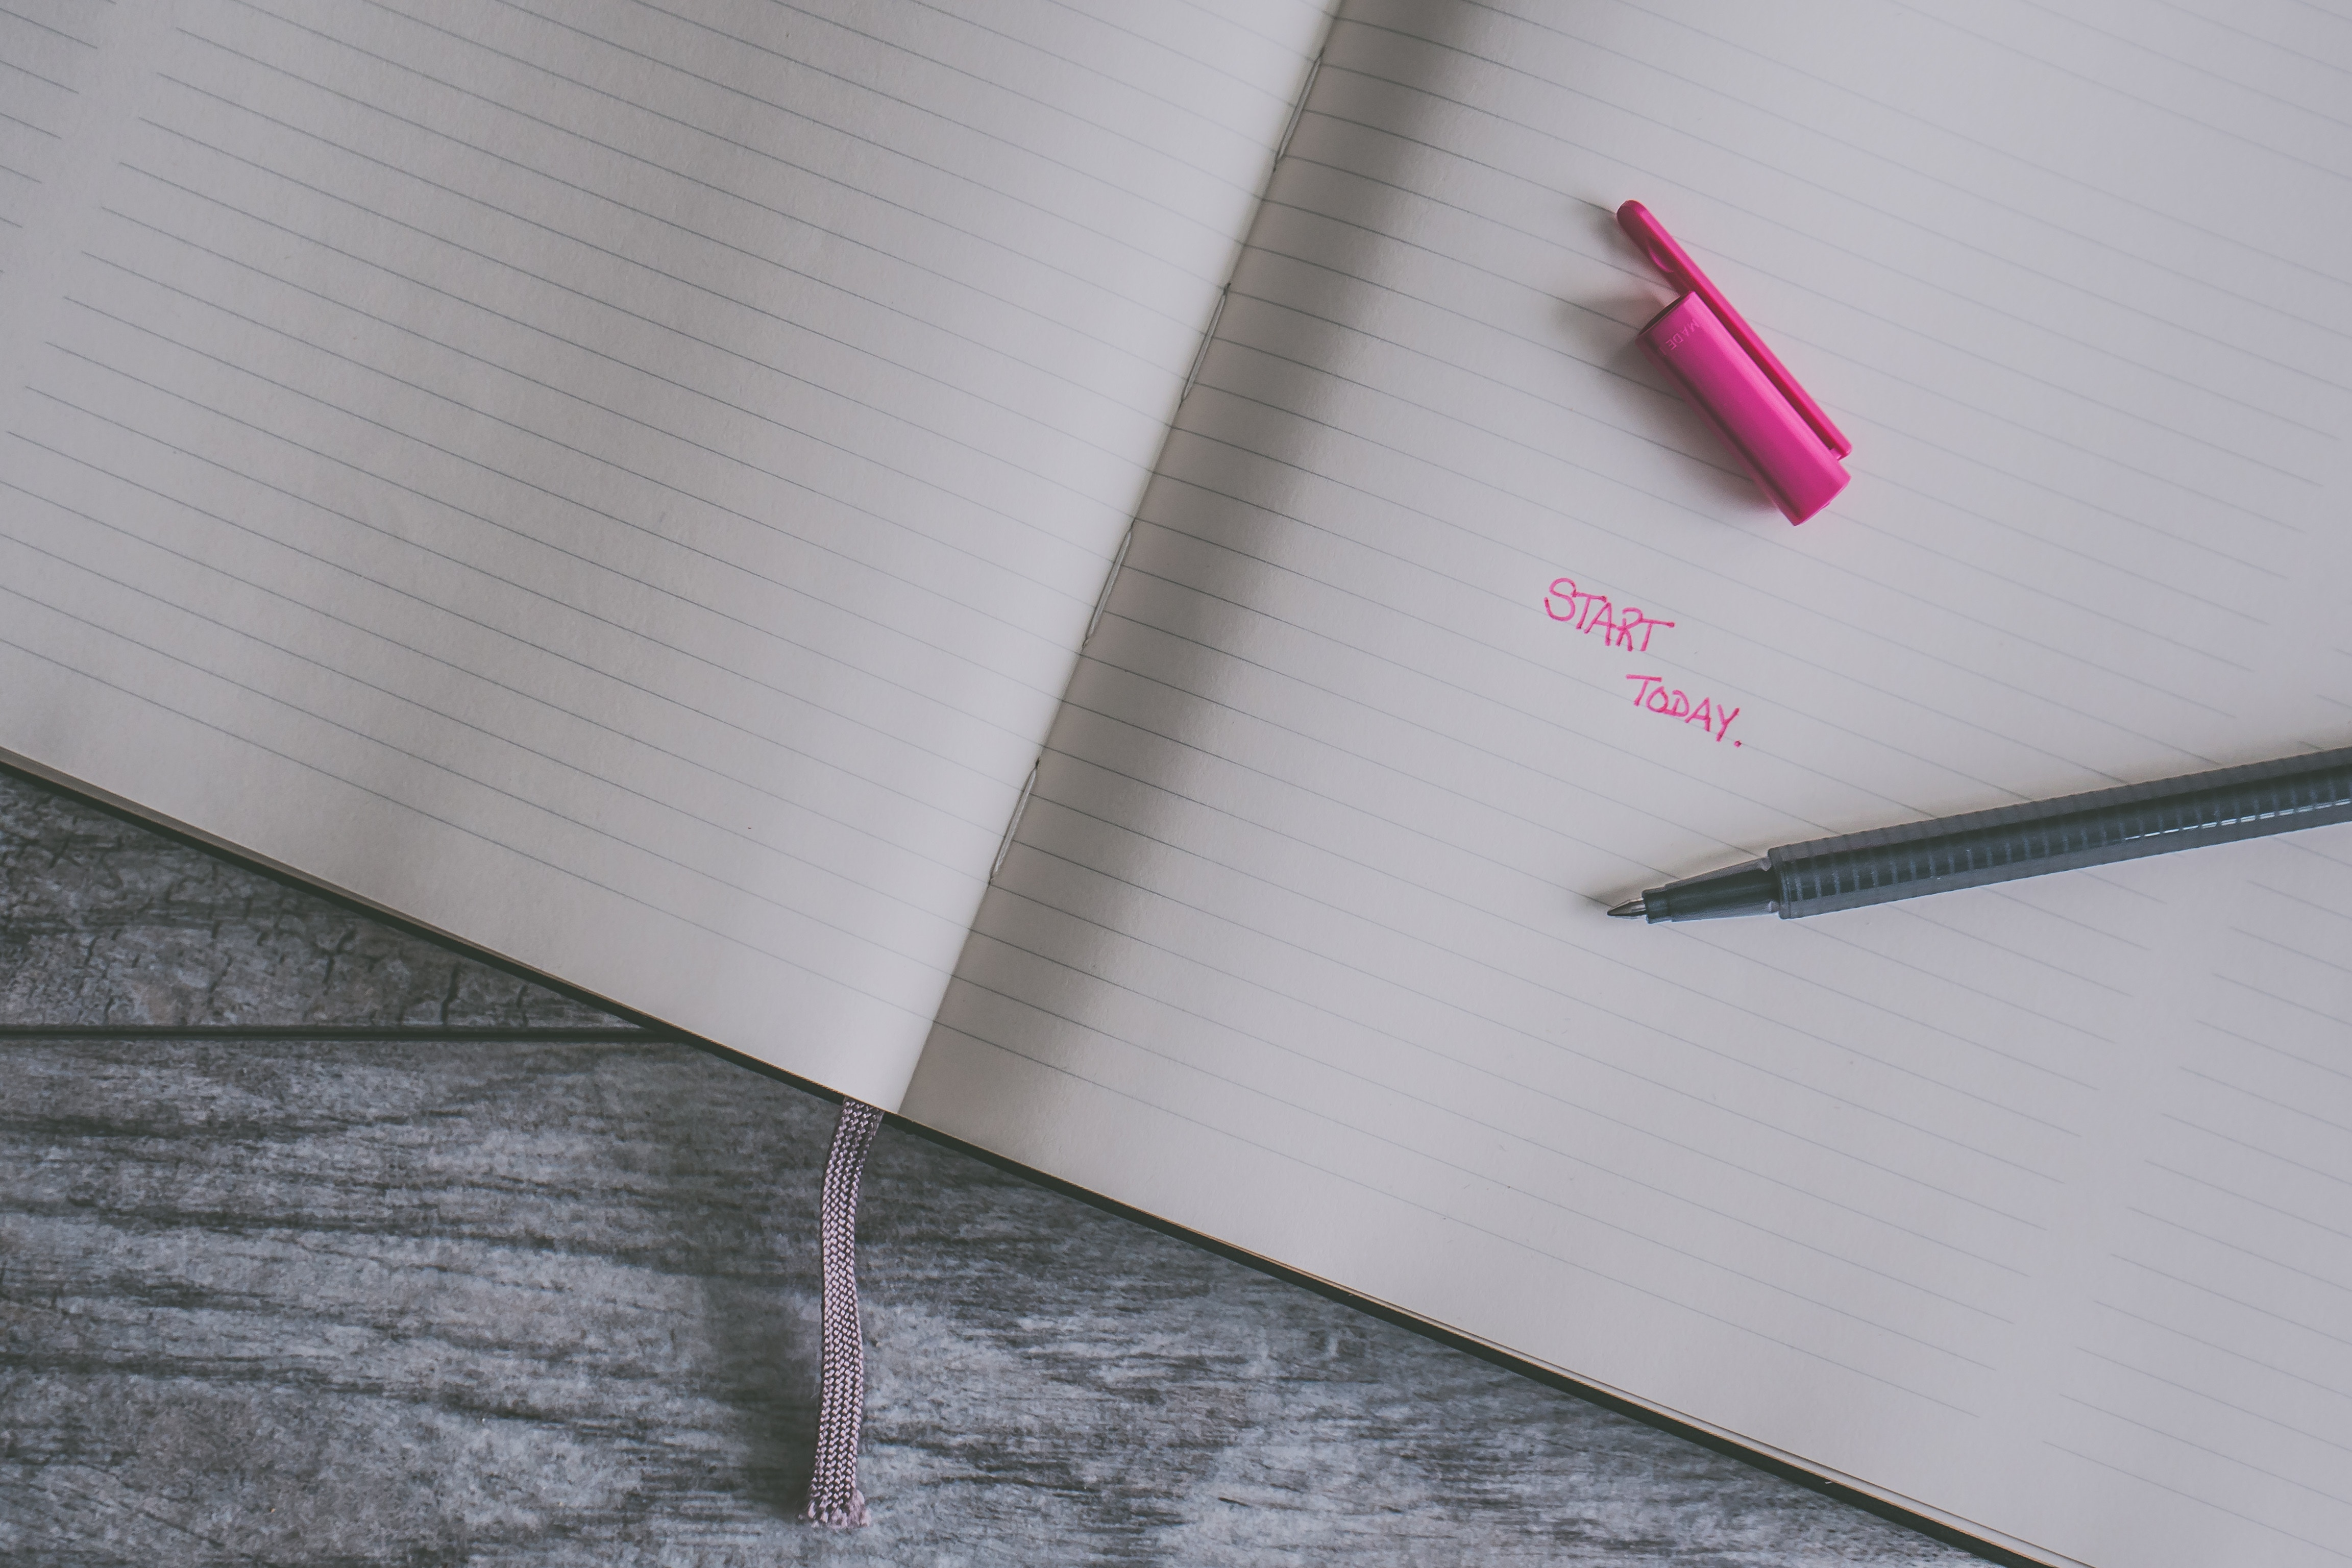 A plain notebook displays in pink ink the words written 'Start here'. Start now with your fresh beginning this year.